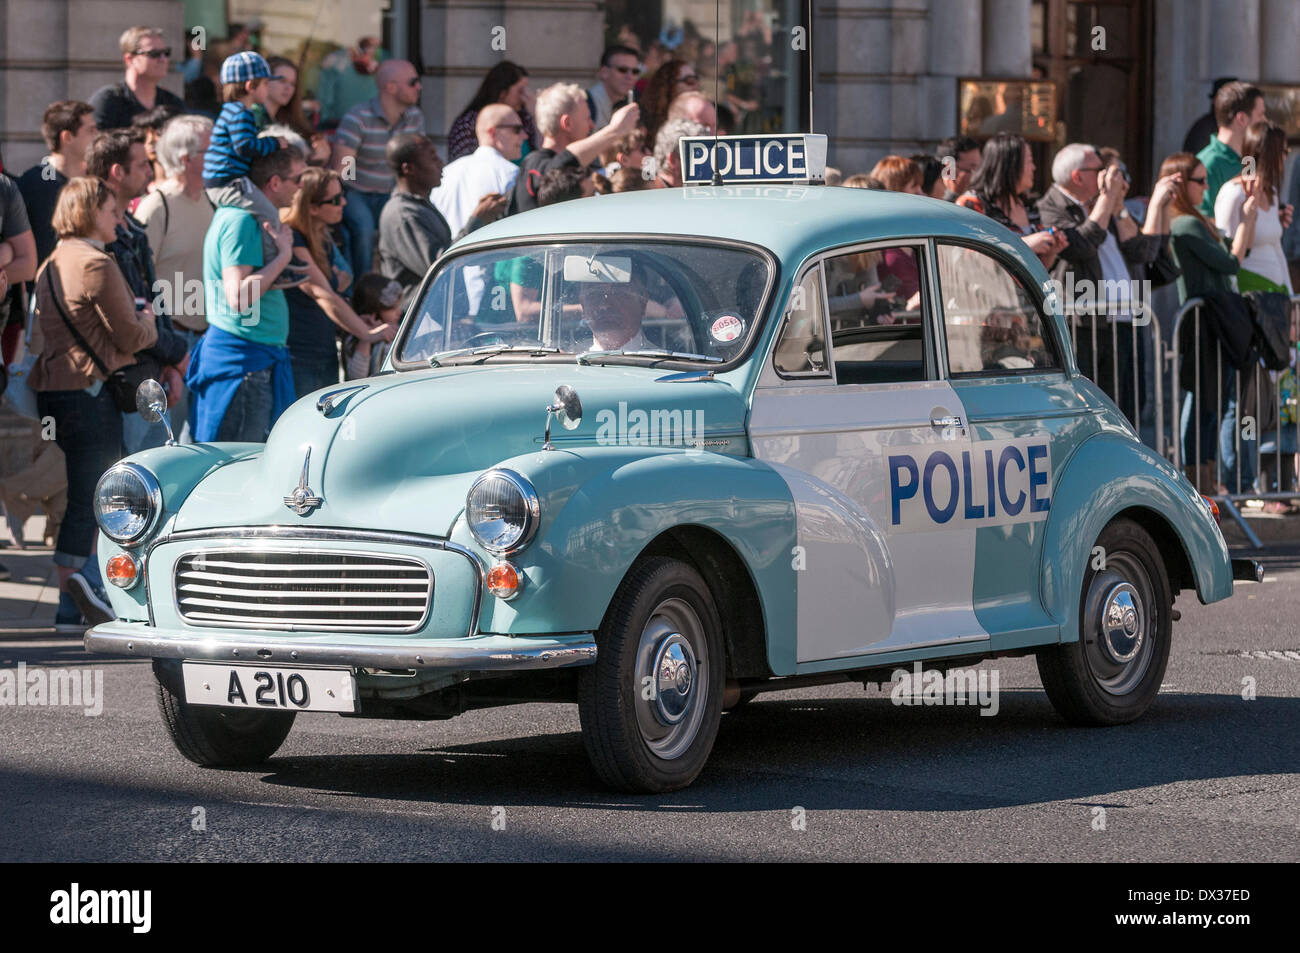 Waterloo Place, London, UK, 16 March 2014 - the annual St. Patrick's Day parade took place in bright sunshine in front of thousands of people who lined the route.  A vintage Morris Minor police car takes place in the parade. Credit:  Stephen Chung/Alamy Live News Stock Photo